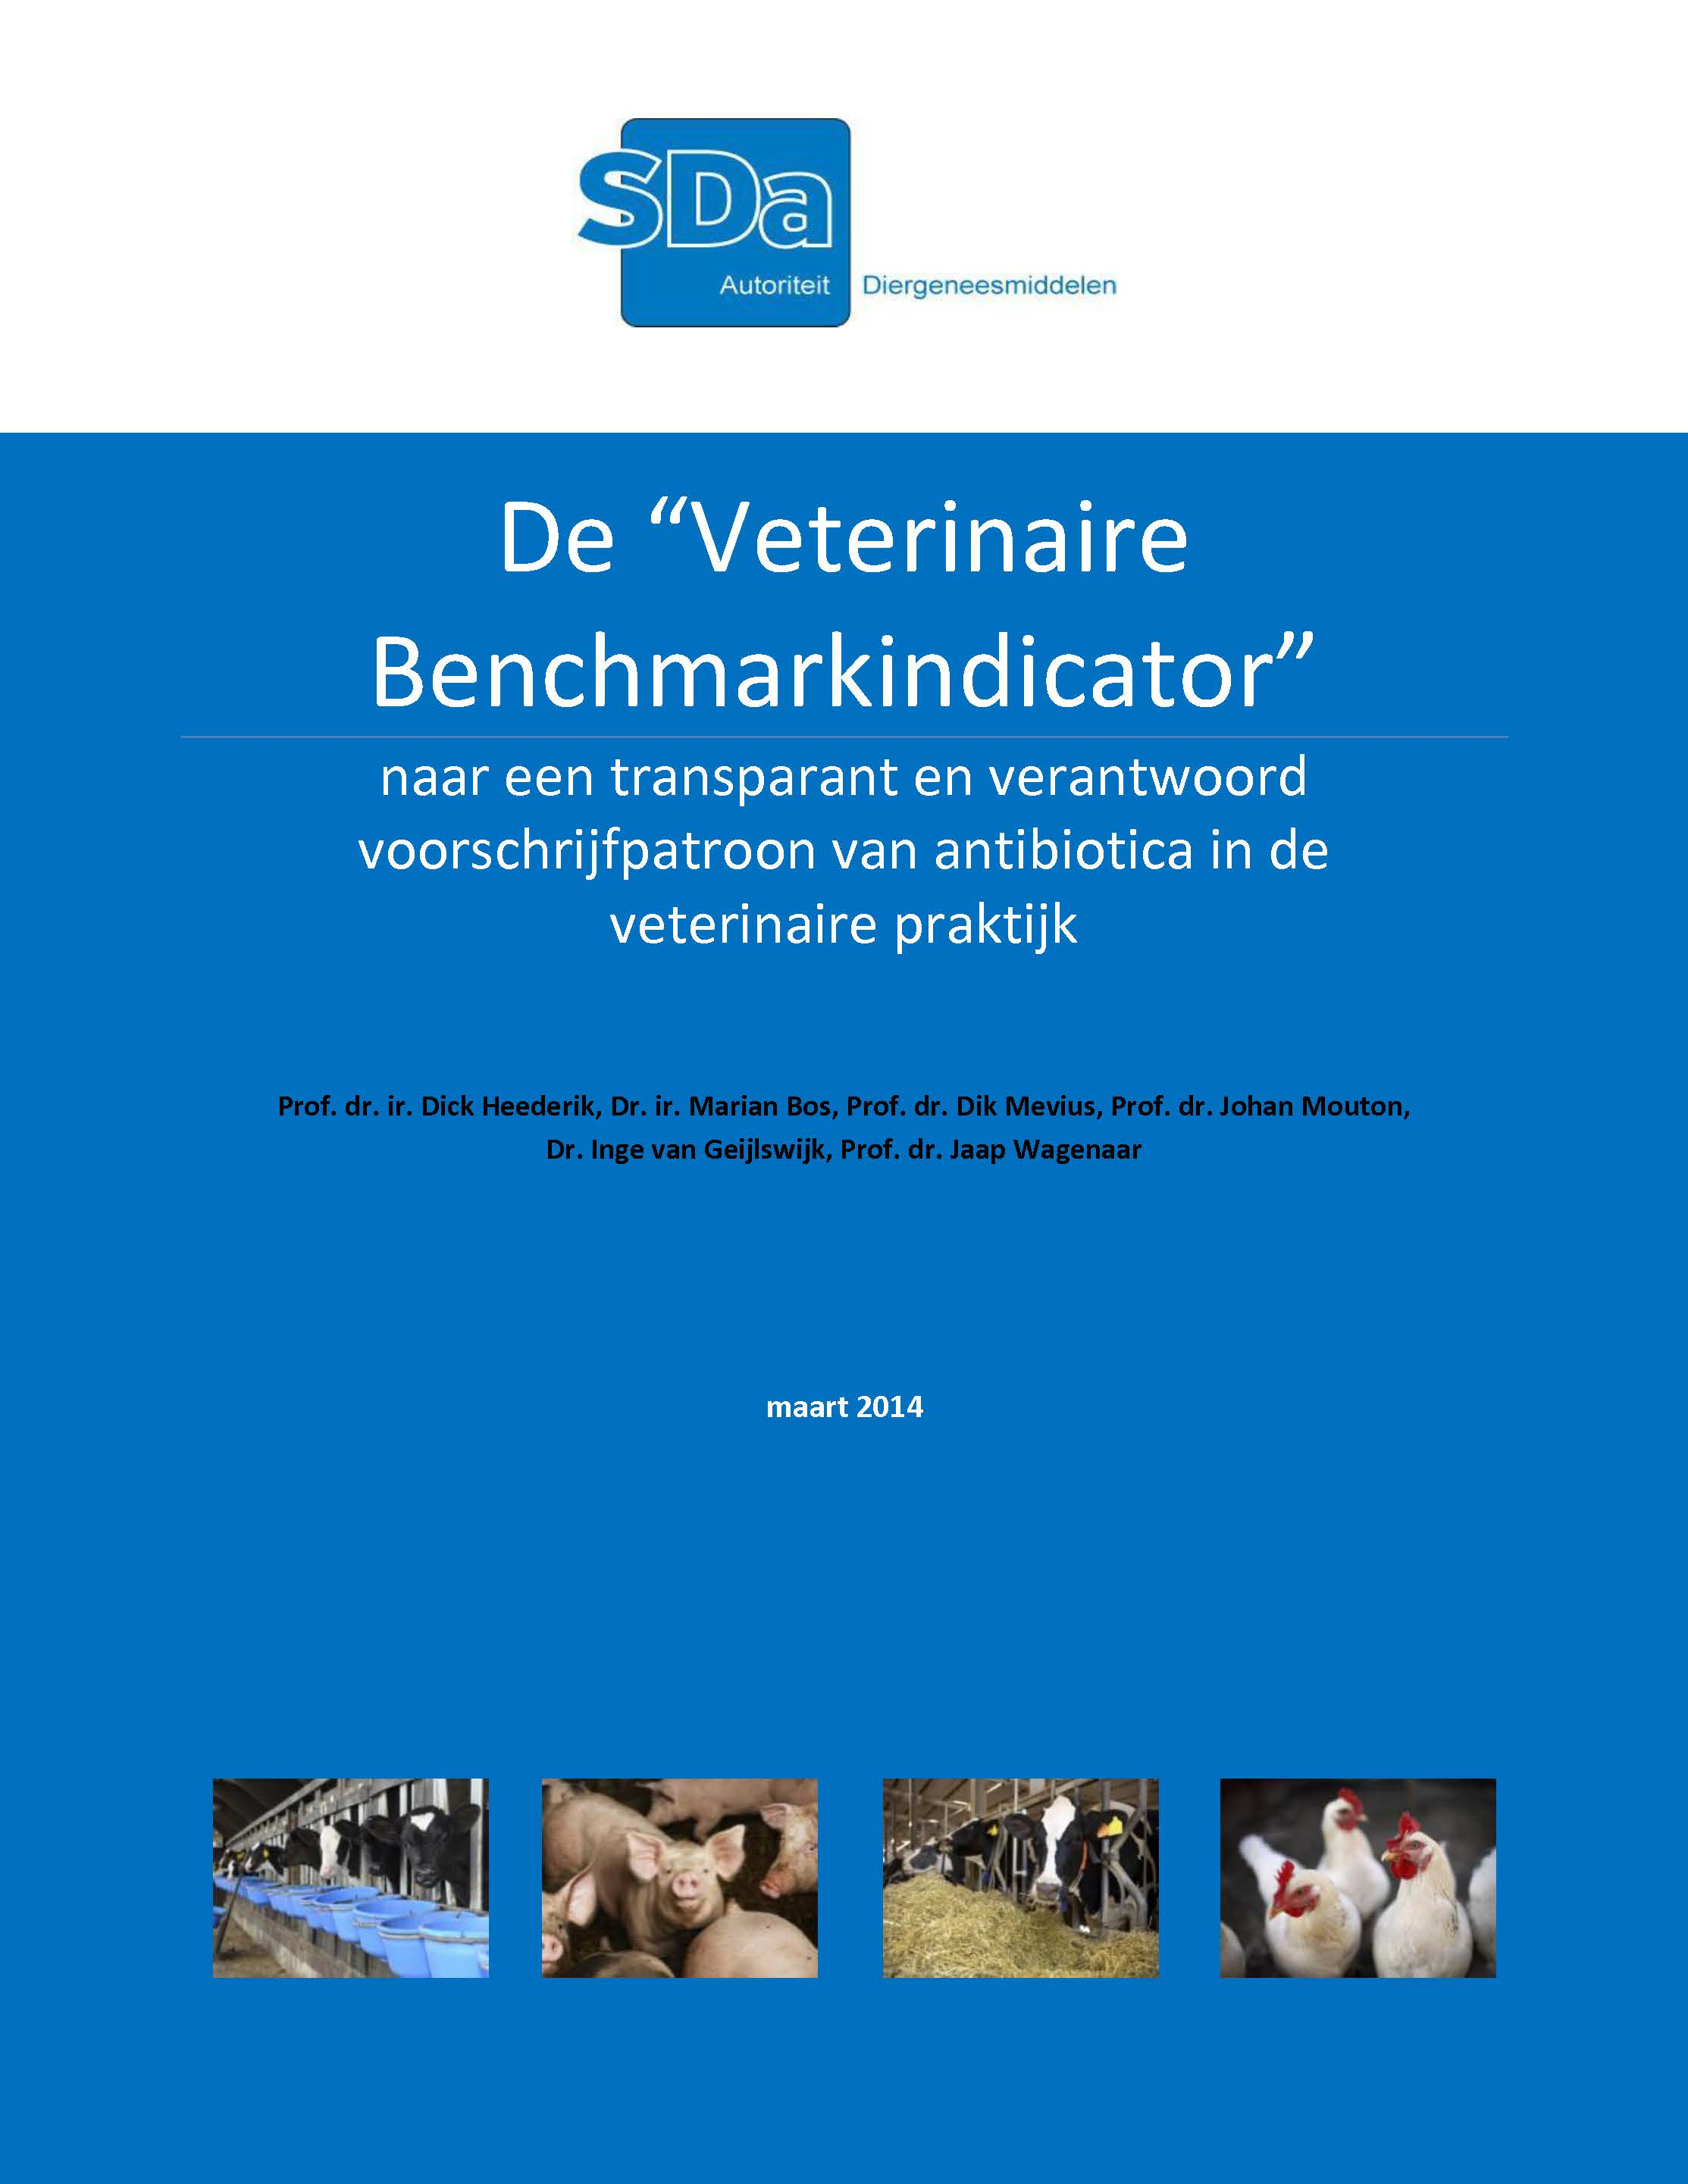 SDa-rapport: Veterinaire Benchmarkindicator